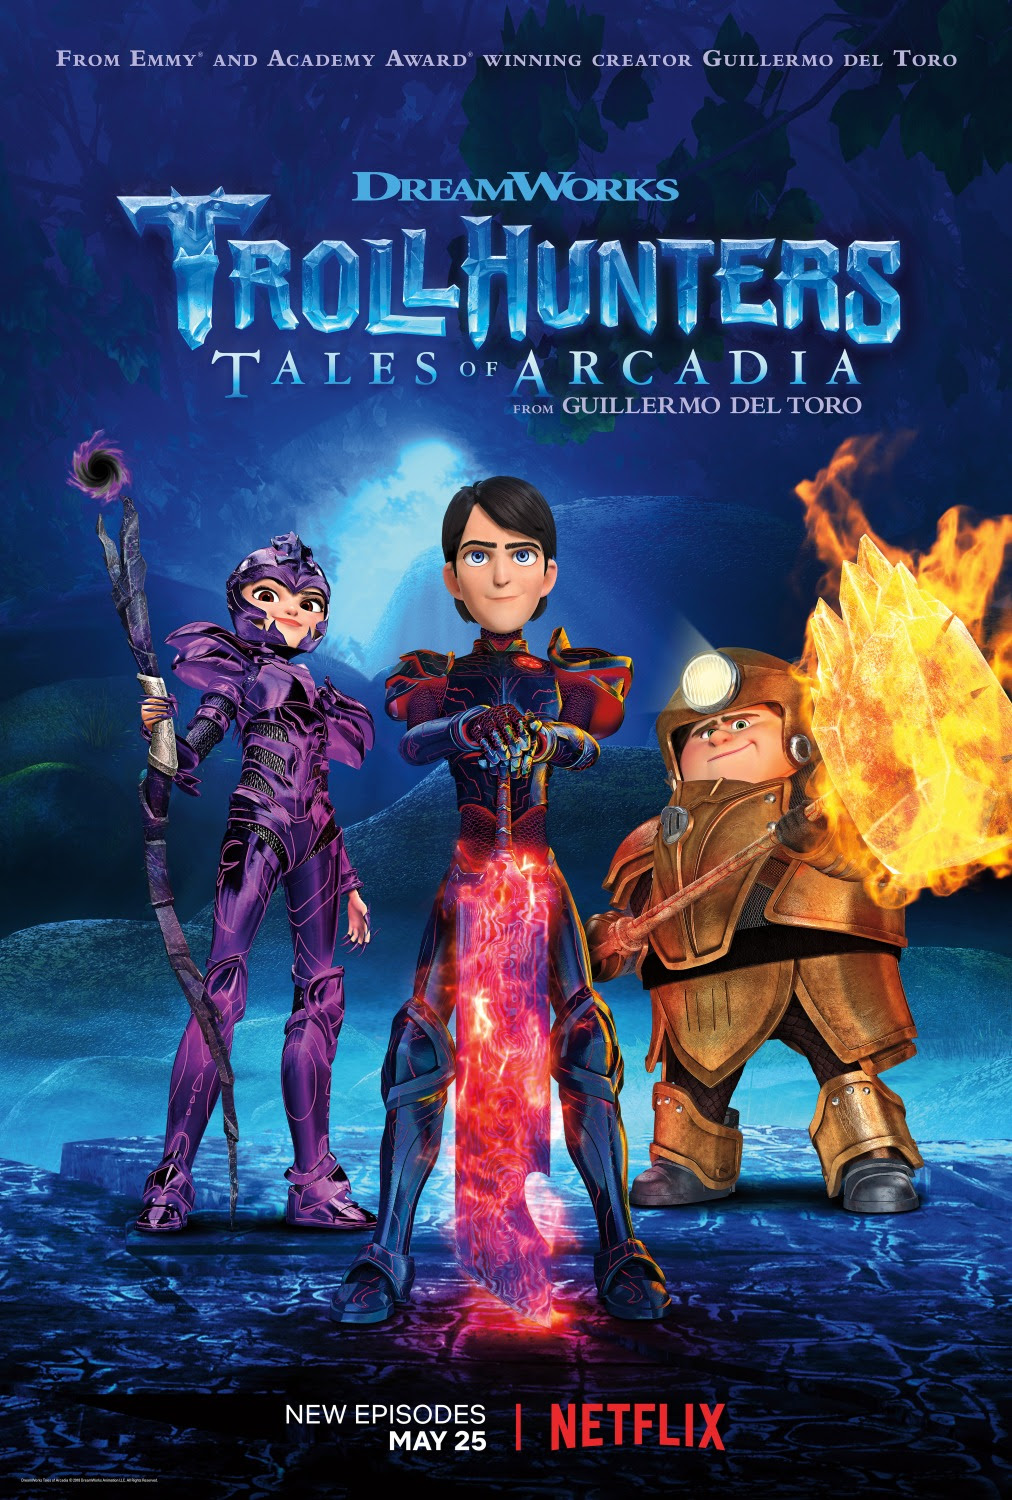 Extra Large Movie Poster Image for Trollhunters (#18 of 18)